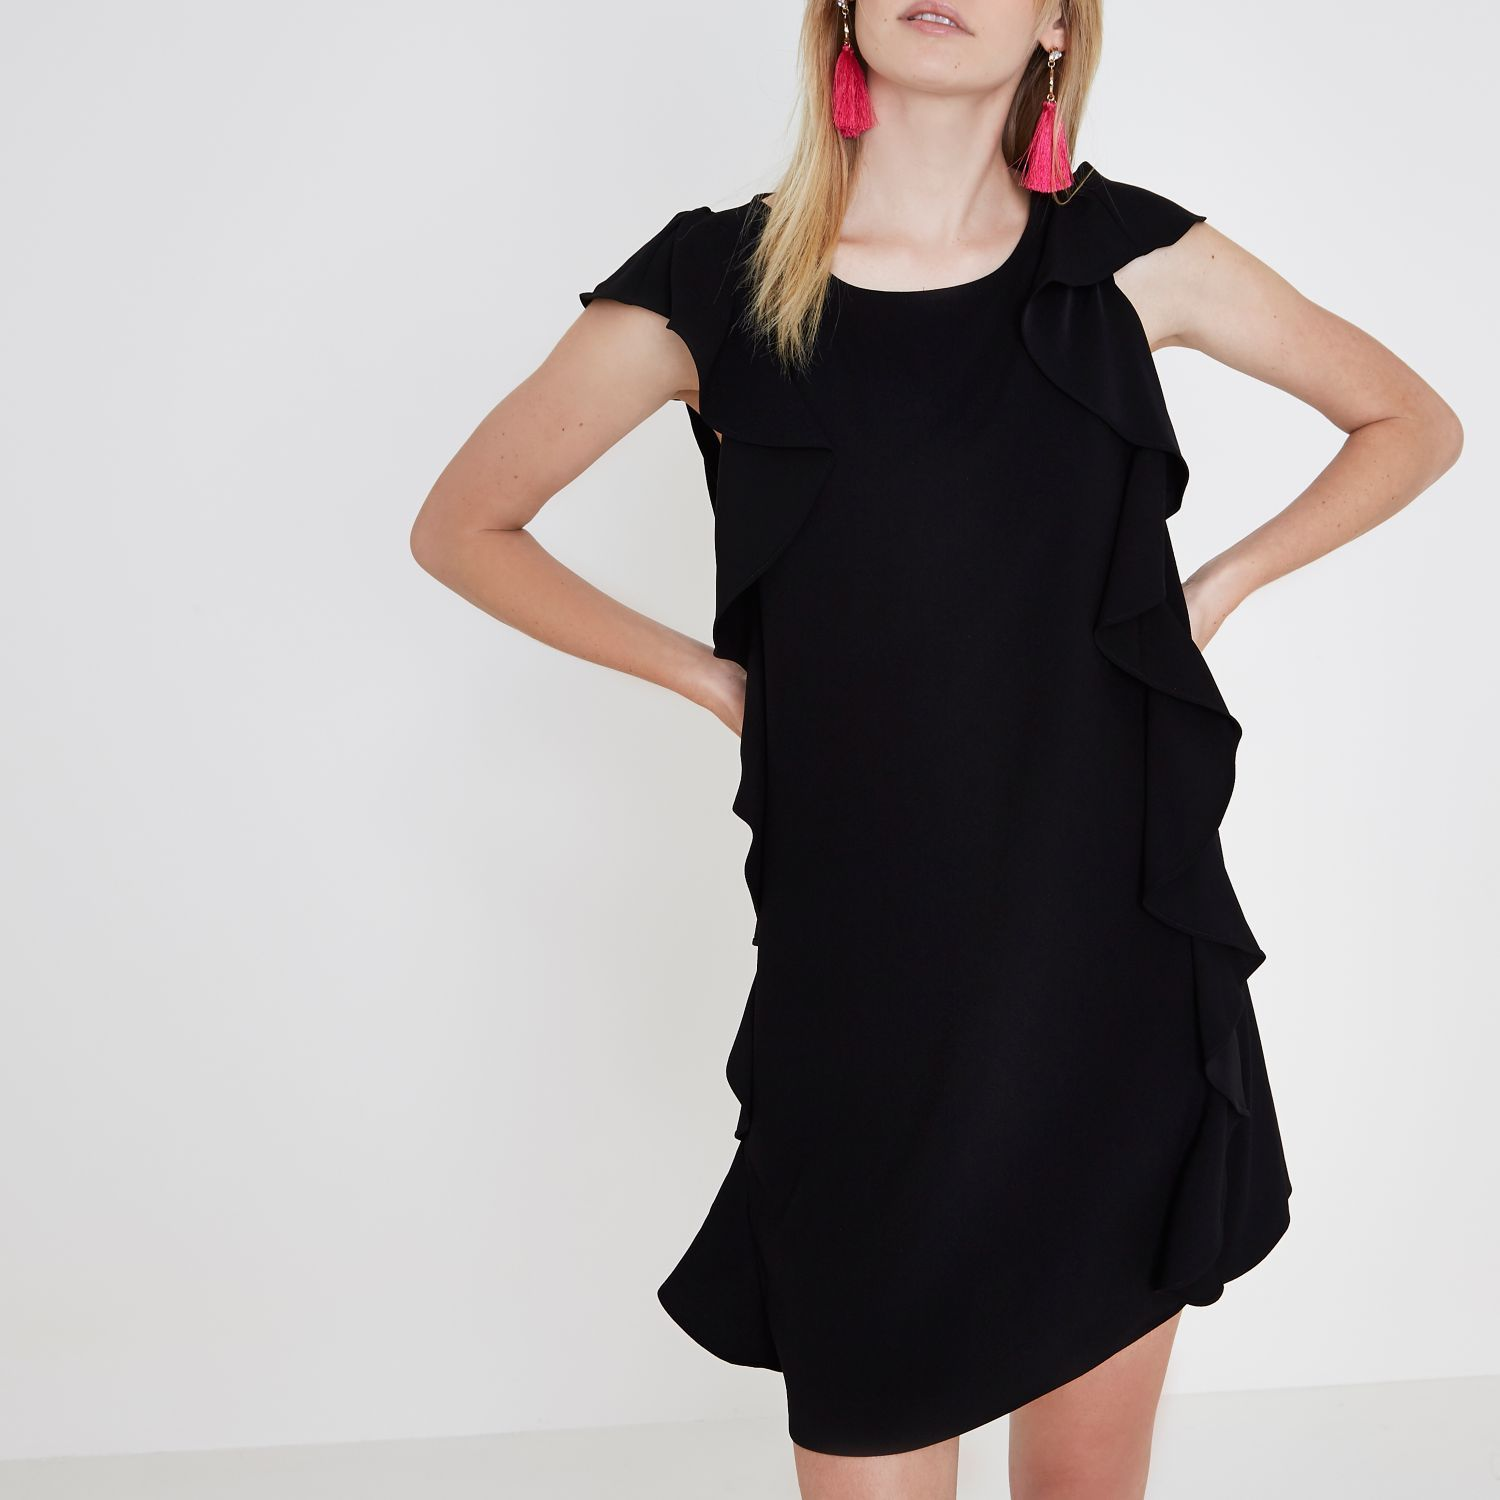 【海外限定】RiverIslandワンピ☆Black frill side sleeveless s